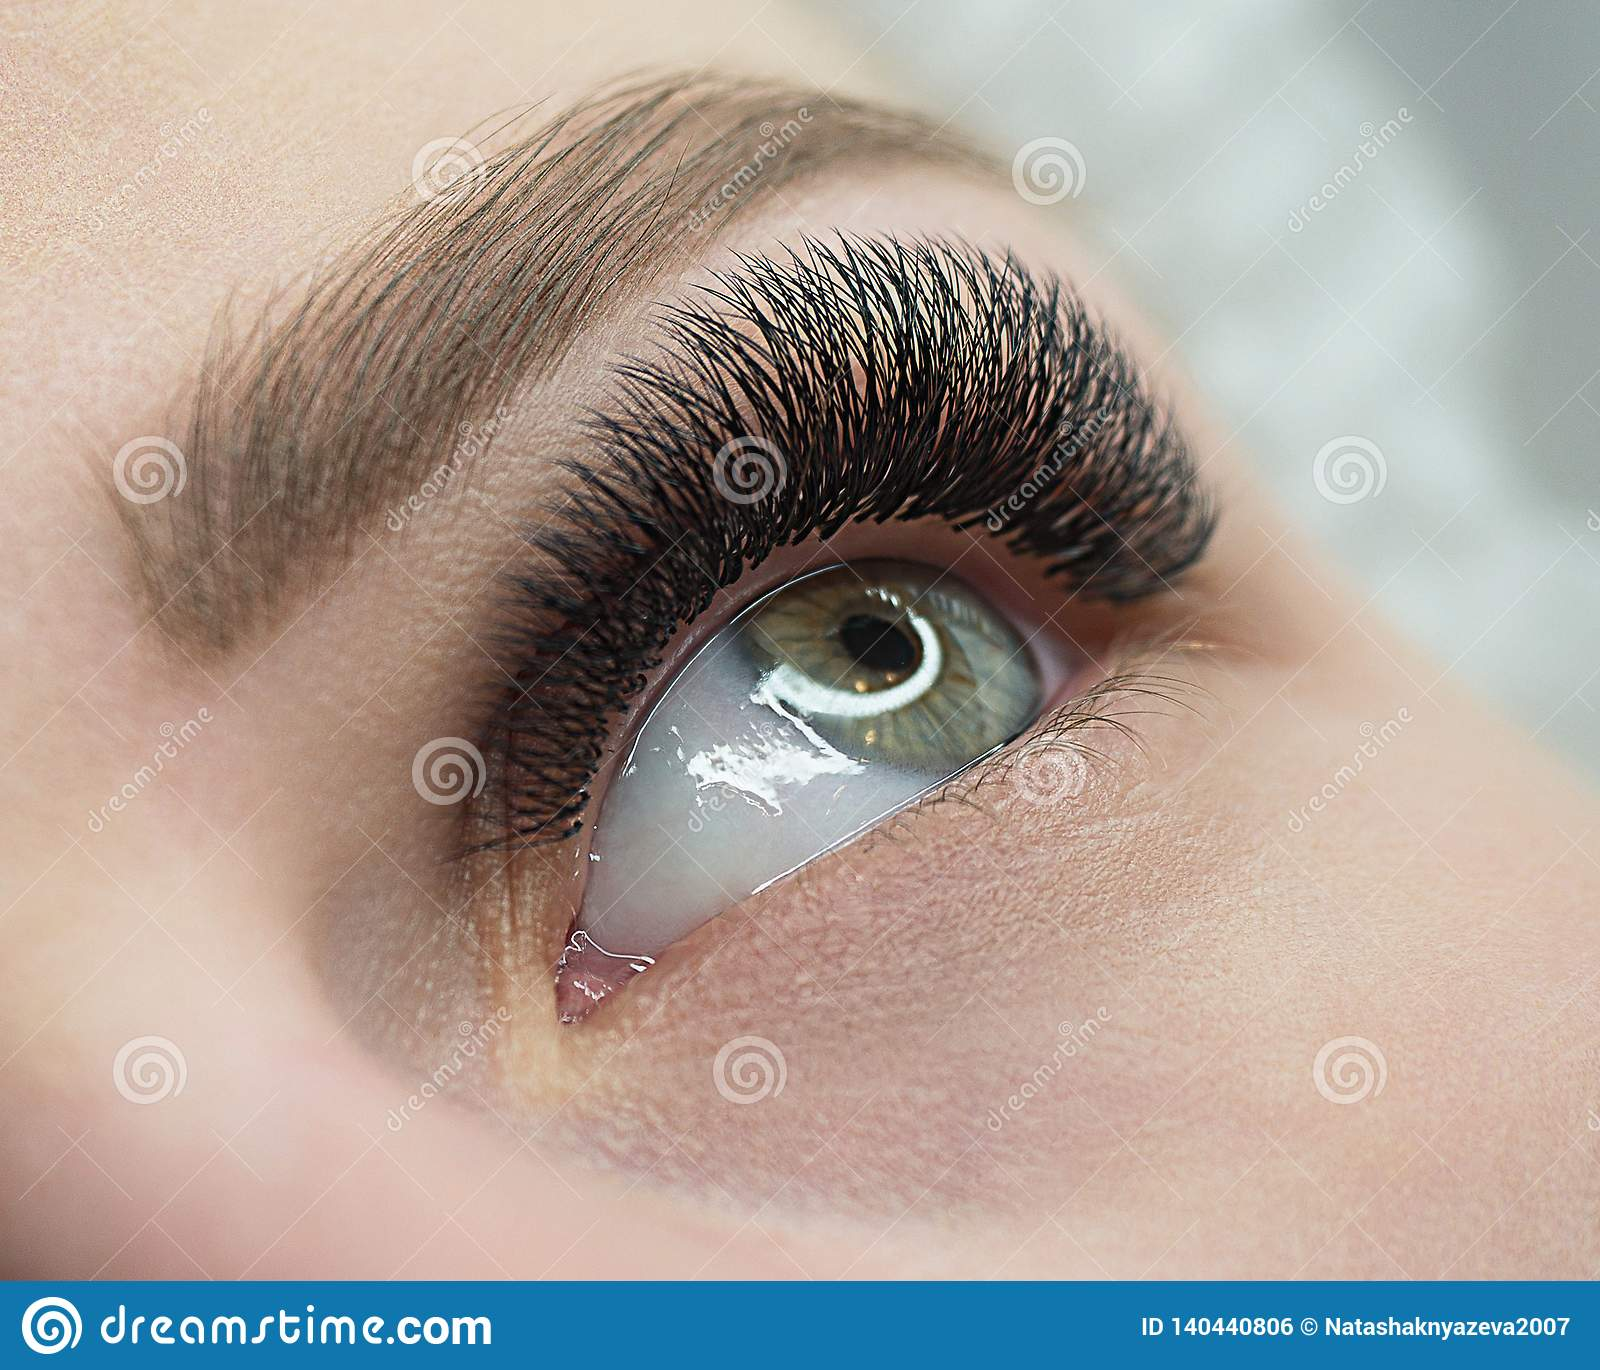 Beautiful macro shot of female open eye with eyelash extension. Natural look and bushy long lashes, close up, selective